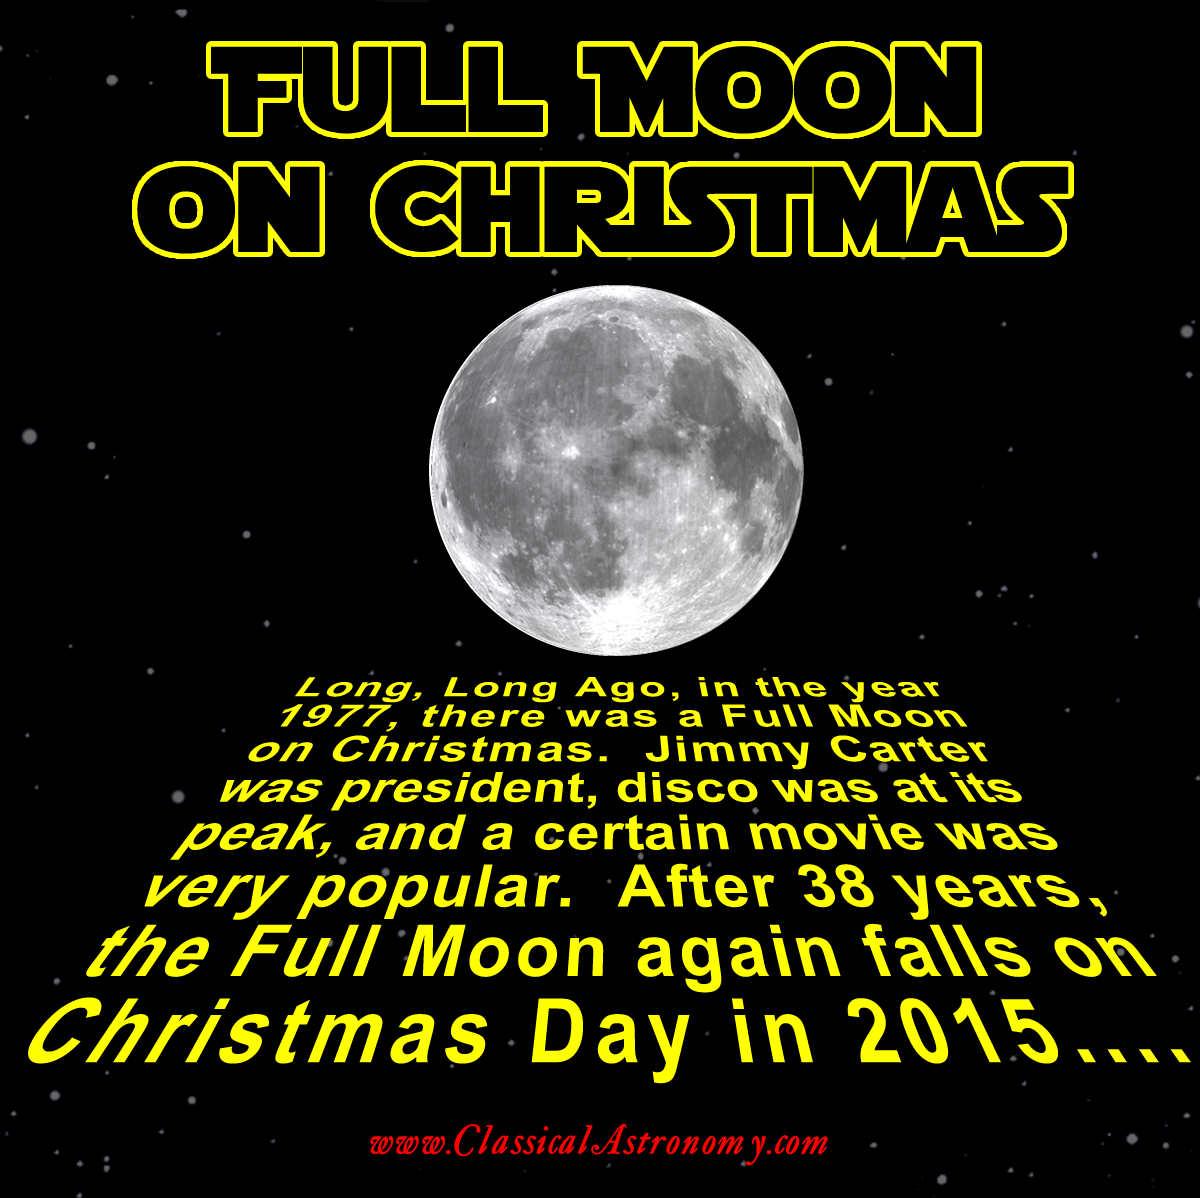 CHRISTMAS FULL MOON And the popular movie in question was